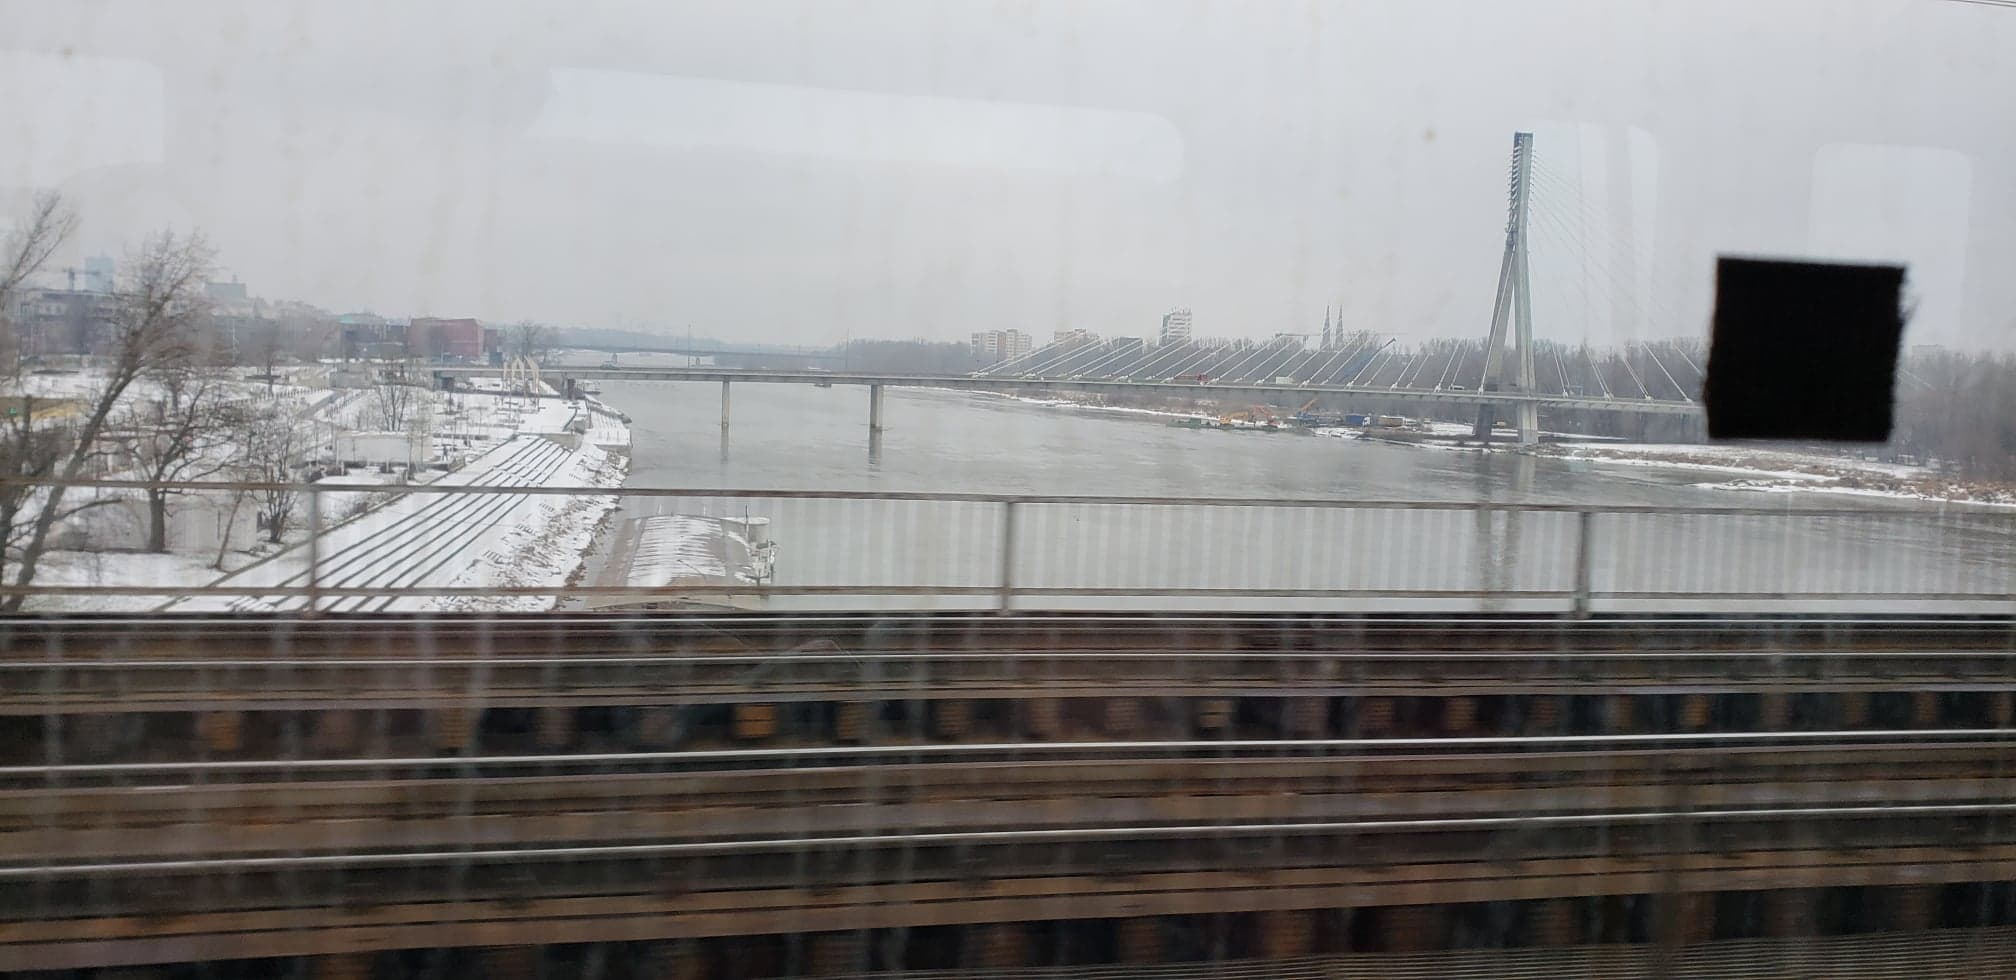 Our nice, gray winter day! The Vistula River.